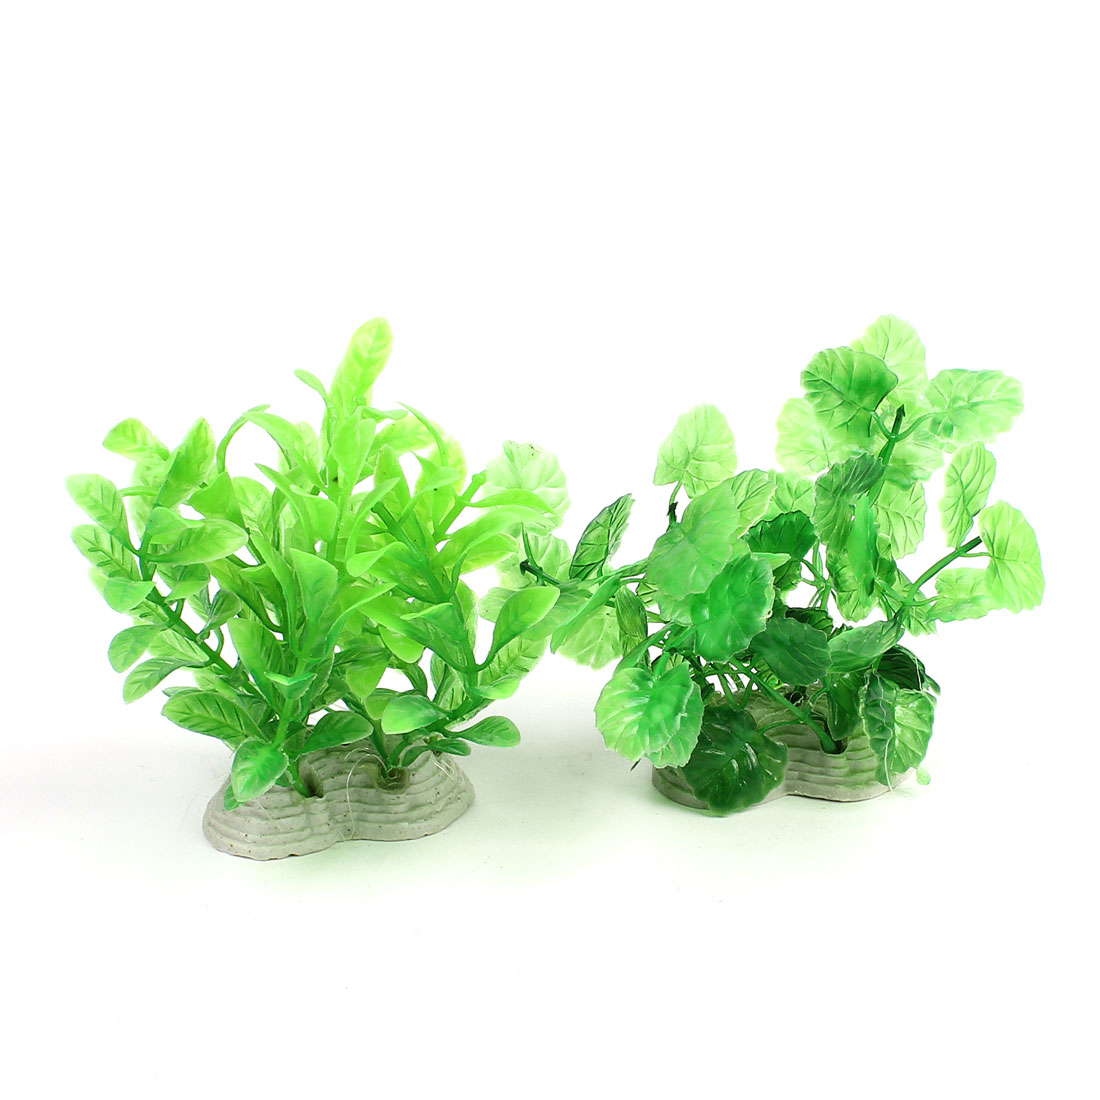 Fishtank Decor Ceramic Base Green Plastic Underwater Plant 12cm 2Pcs